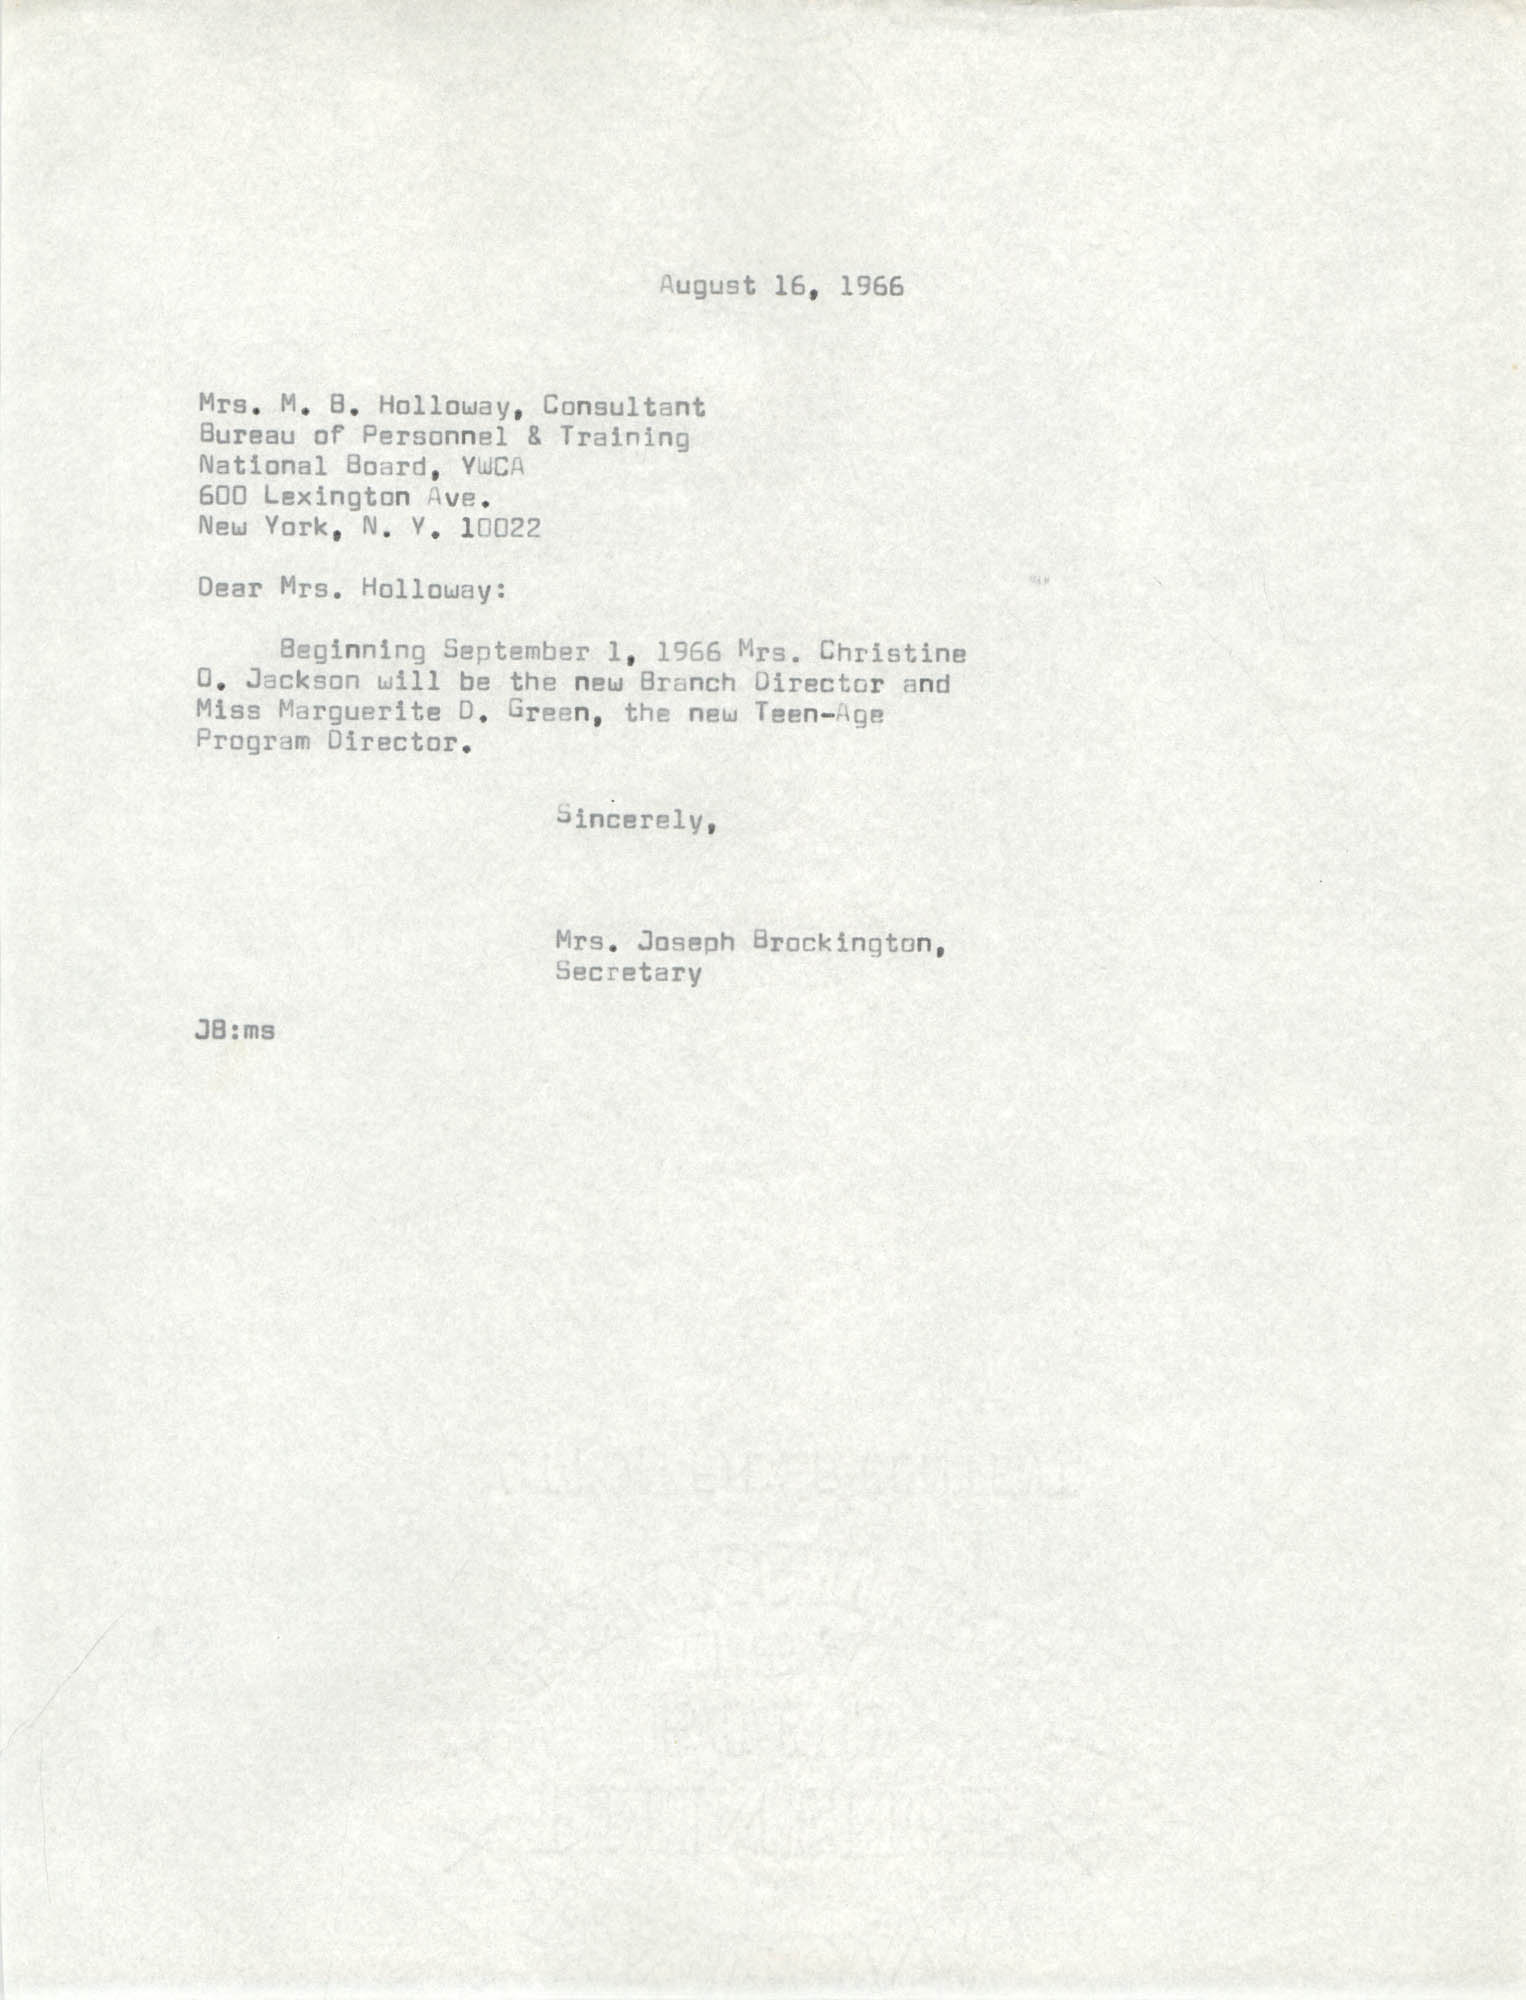 Letter from Mrs. Joseph Brockington to M. B. Holloway, August 16, 1966